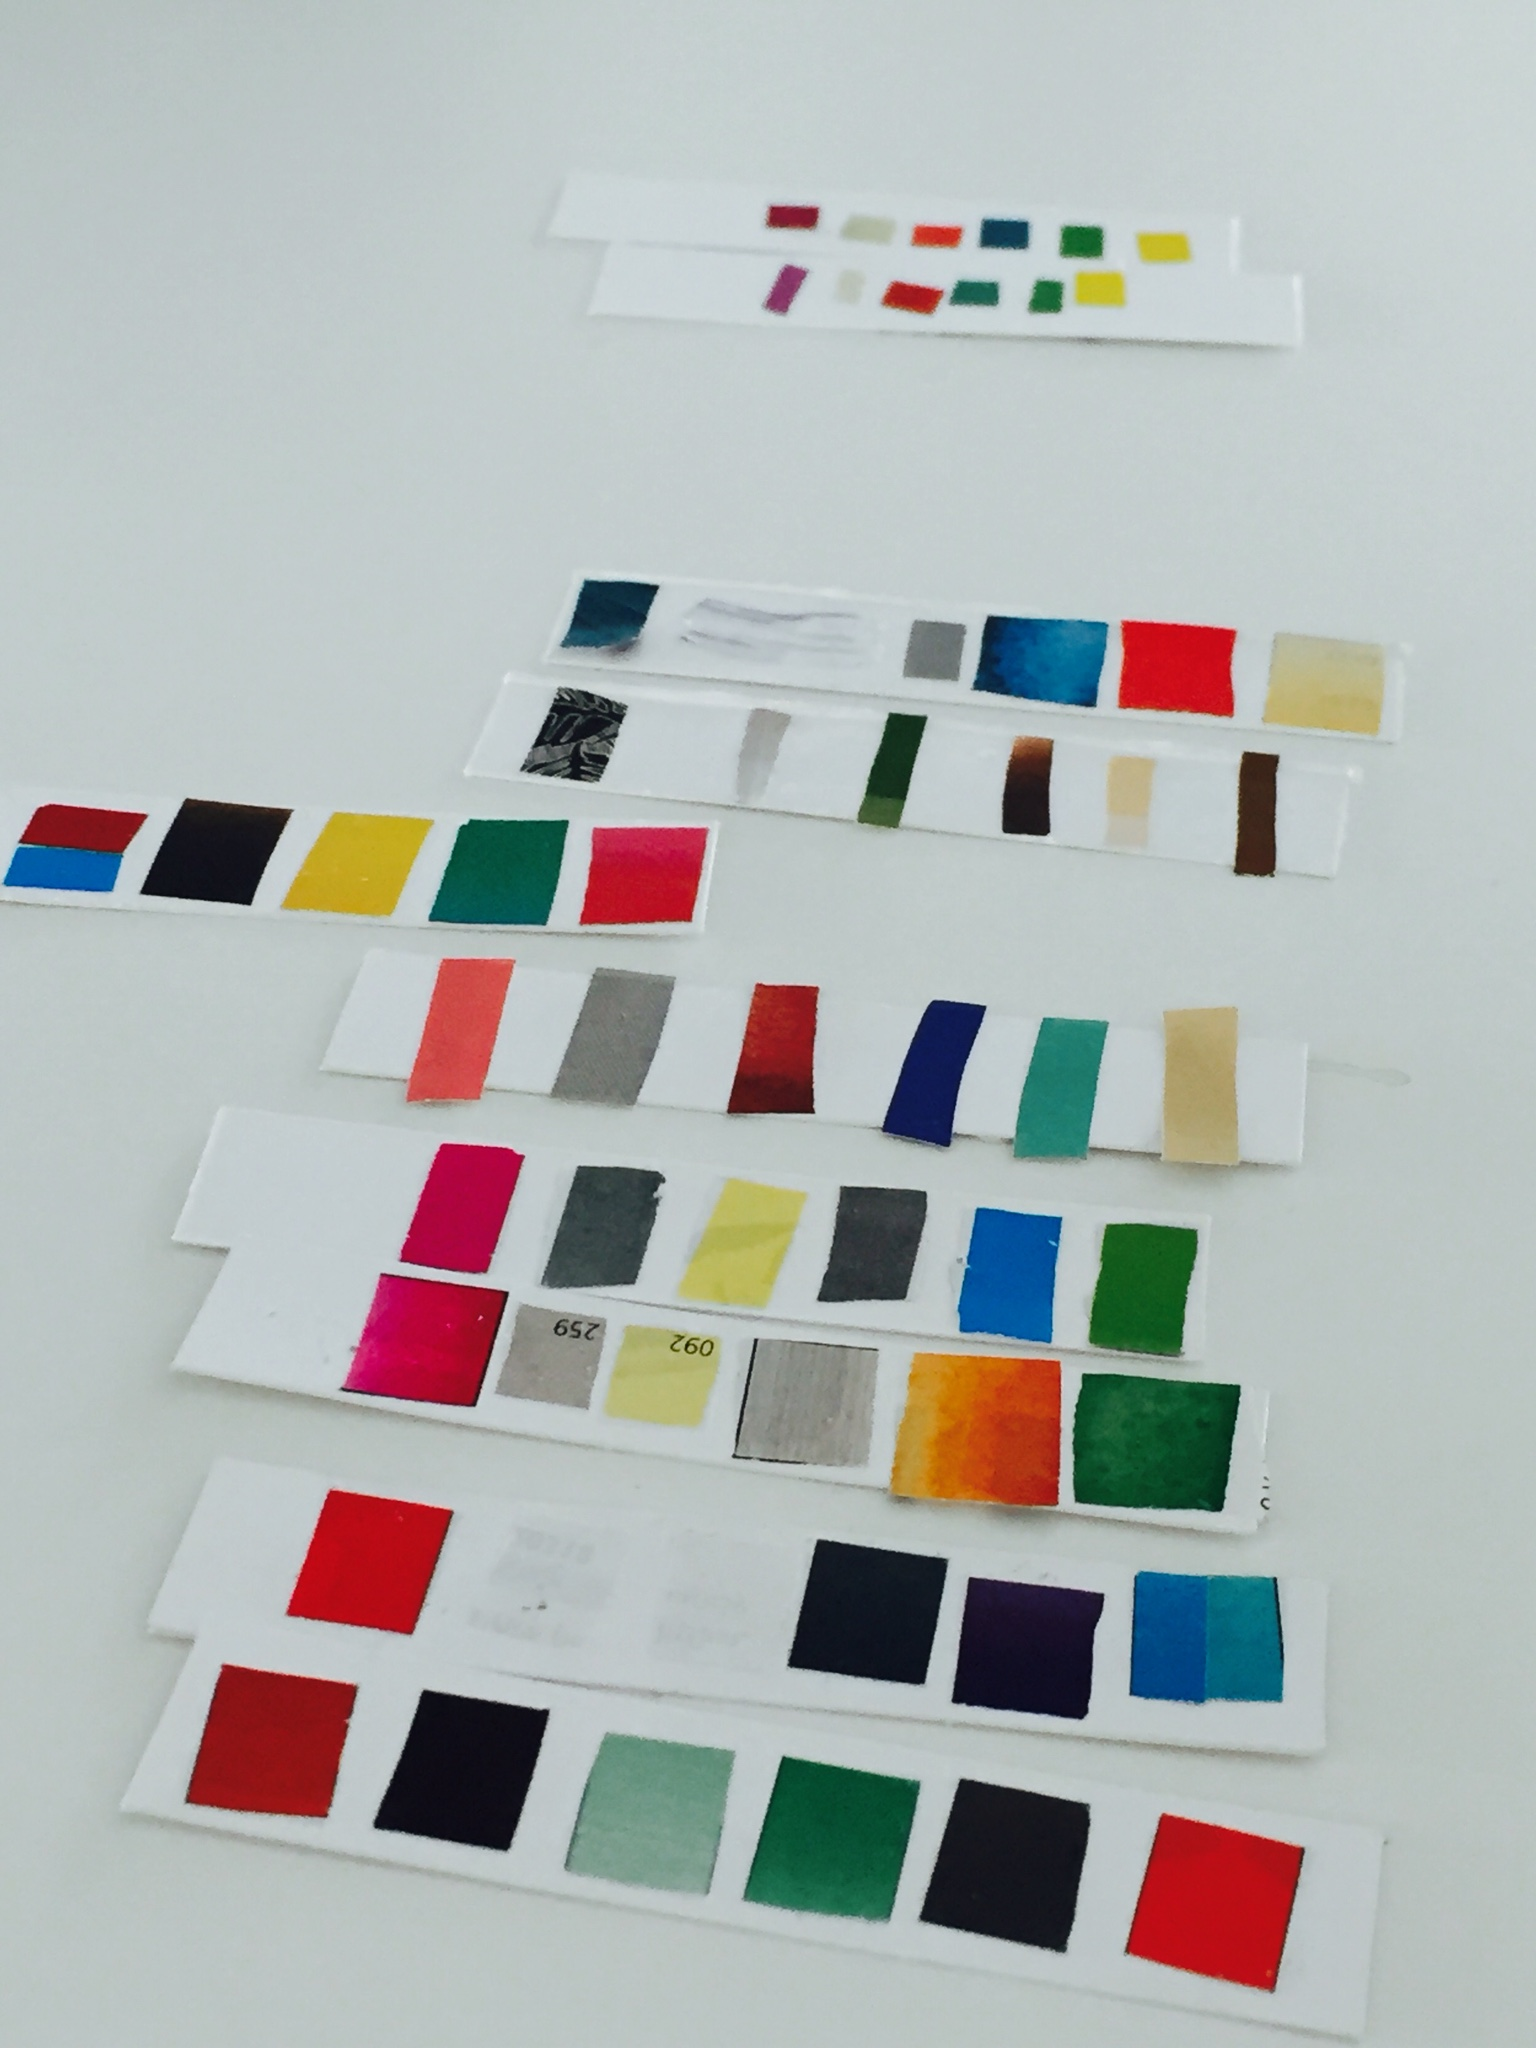 The Colourscape Lab - WorkshopGovier developed the Colourscape Lab through the support of the Arnolfini's 'Space in Kind' scheme.The one day Lab brought together a group of artists and anthropologists who trialled and interrogated the 'colourscape' method.During the Lab, participants created and explored colour profiles that corresponded to individual and shared perceptions of the environment and the body.The Lab was inspired by Hayward and Kennedy's socio-geographic colour mapping project ColourGround and Lancaster's (1996) discussion of colourscapes and colour control.Professor Paul Haywood (Central Saint Martins) attended the Lab and talked about his colour-based research.The colourscape method is a sensory elicitation technique for ethnographic research, and involves using colour-based elicitation to offer new dimensions to traditional empirical research (see Harper 2002).Light Studio, Arnolfini, Bristol.18.4.16